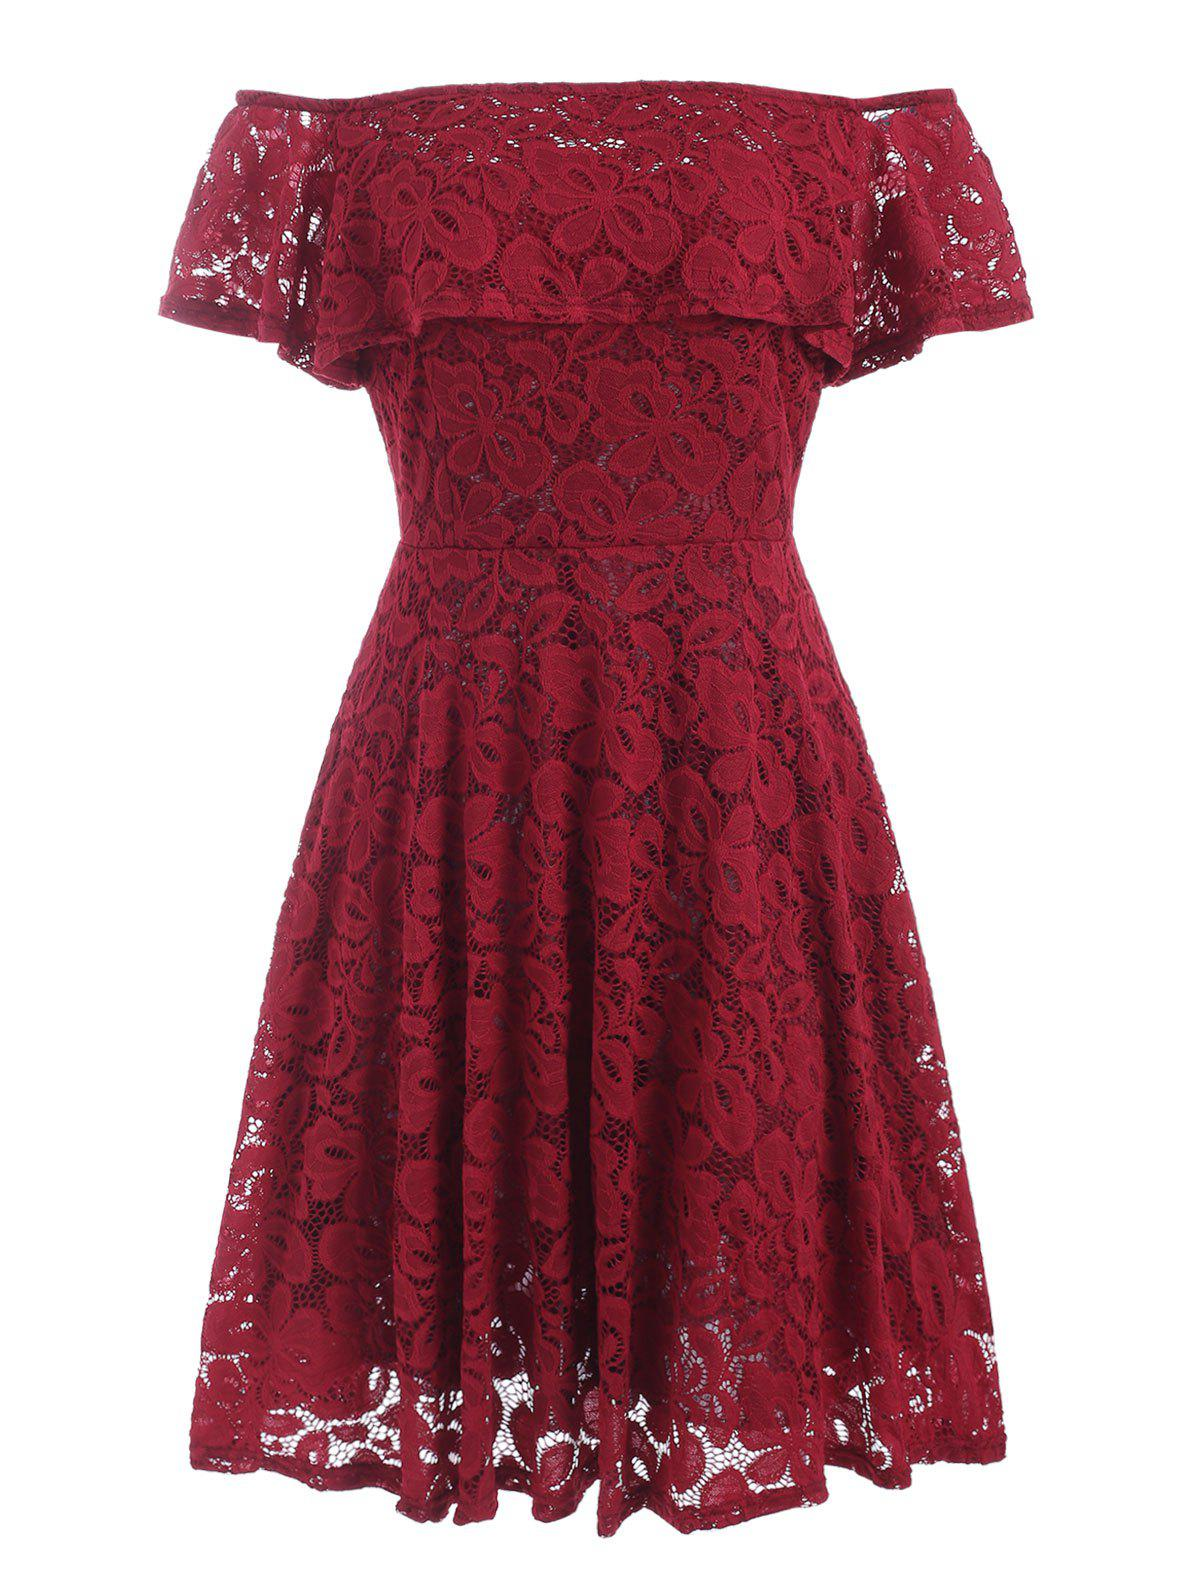 Off Shoulder Ruffles Lace Dress - RED WINE S